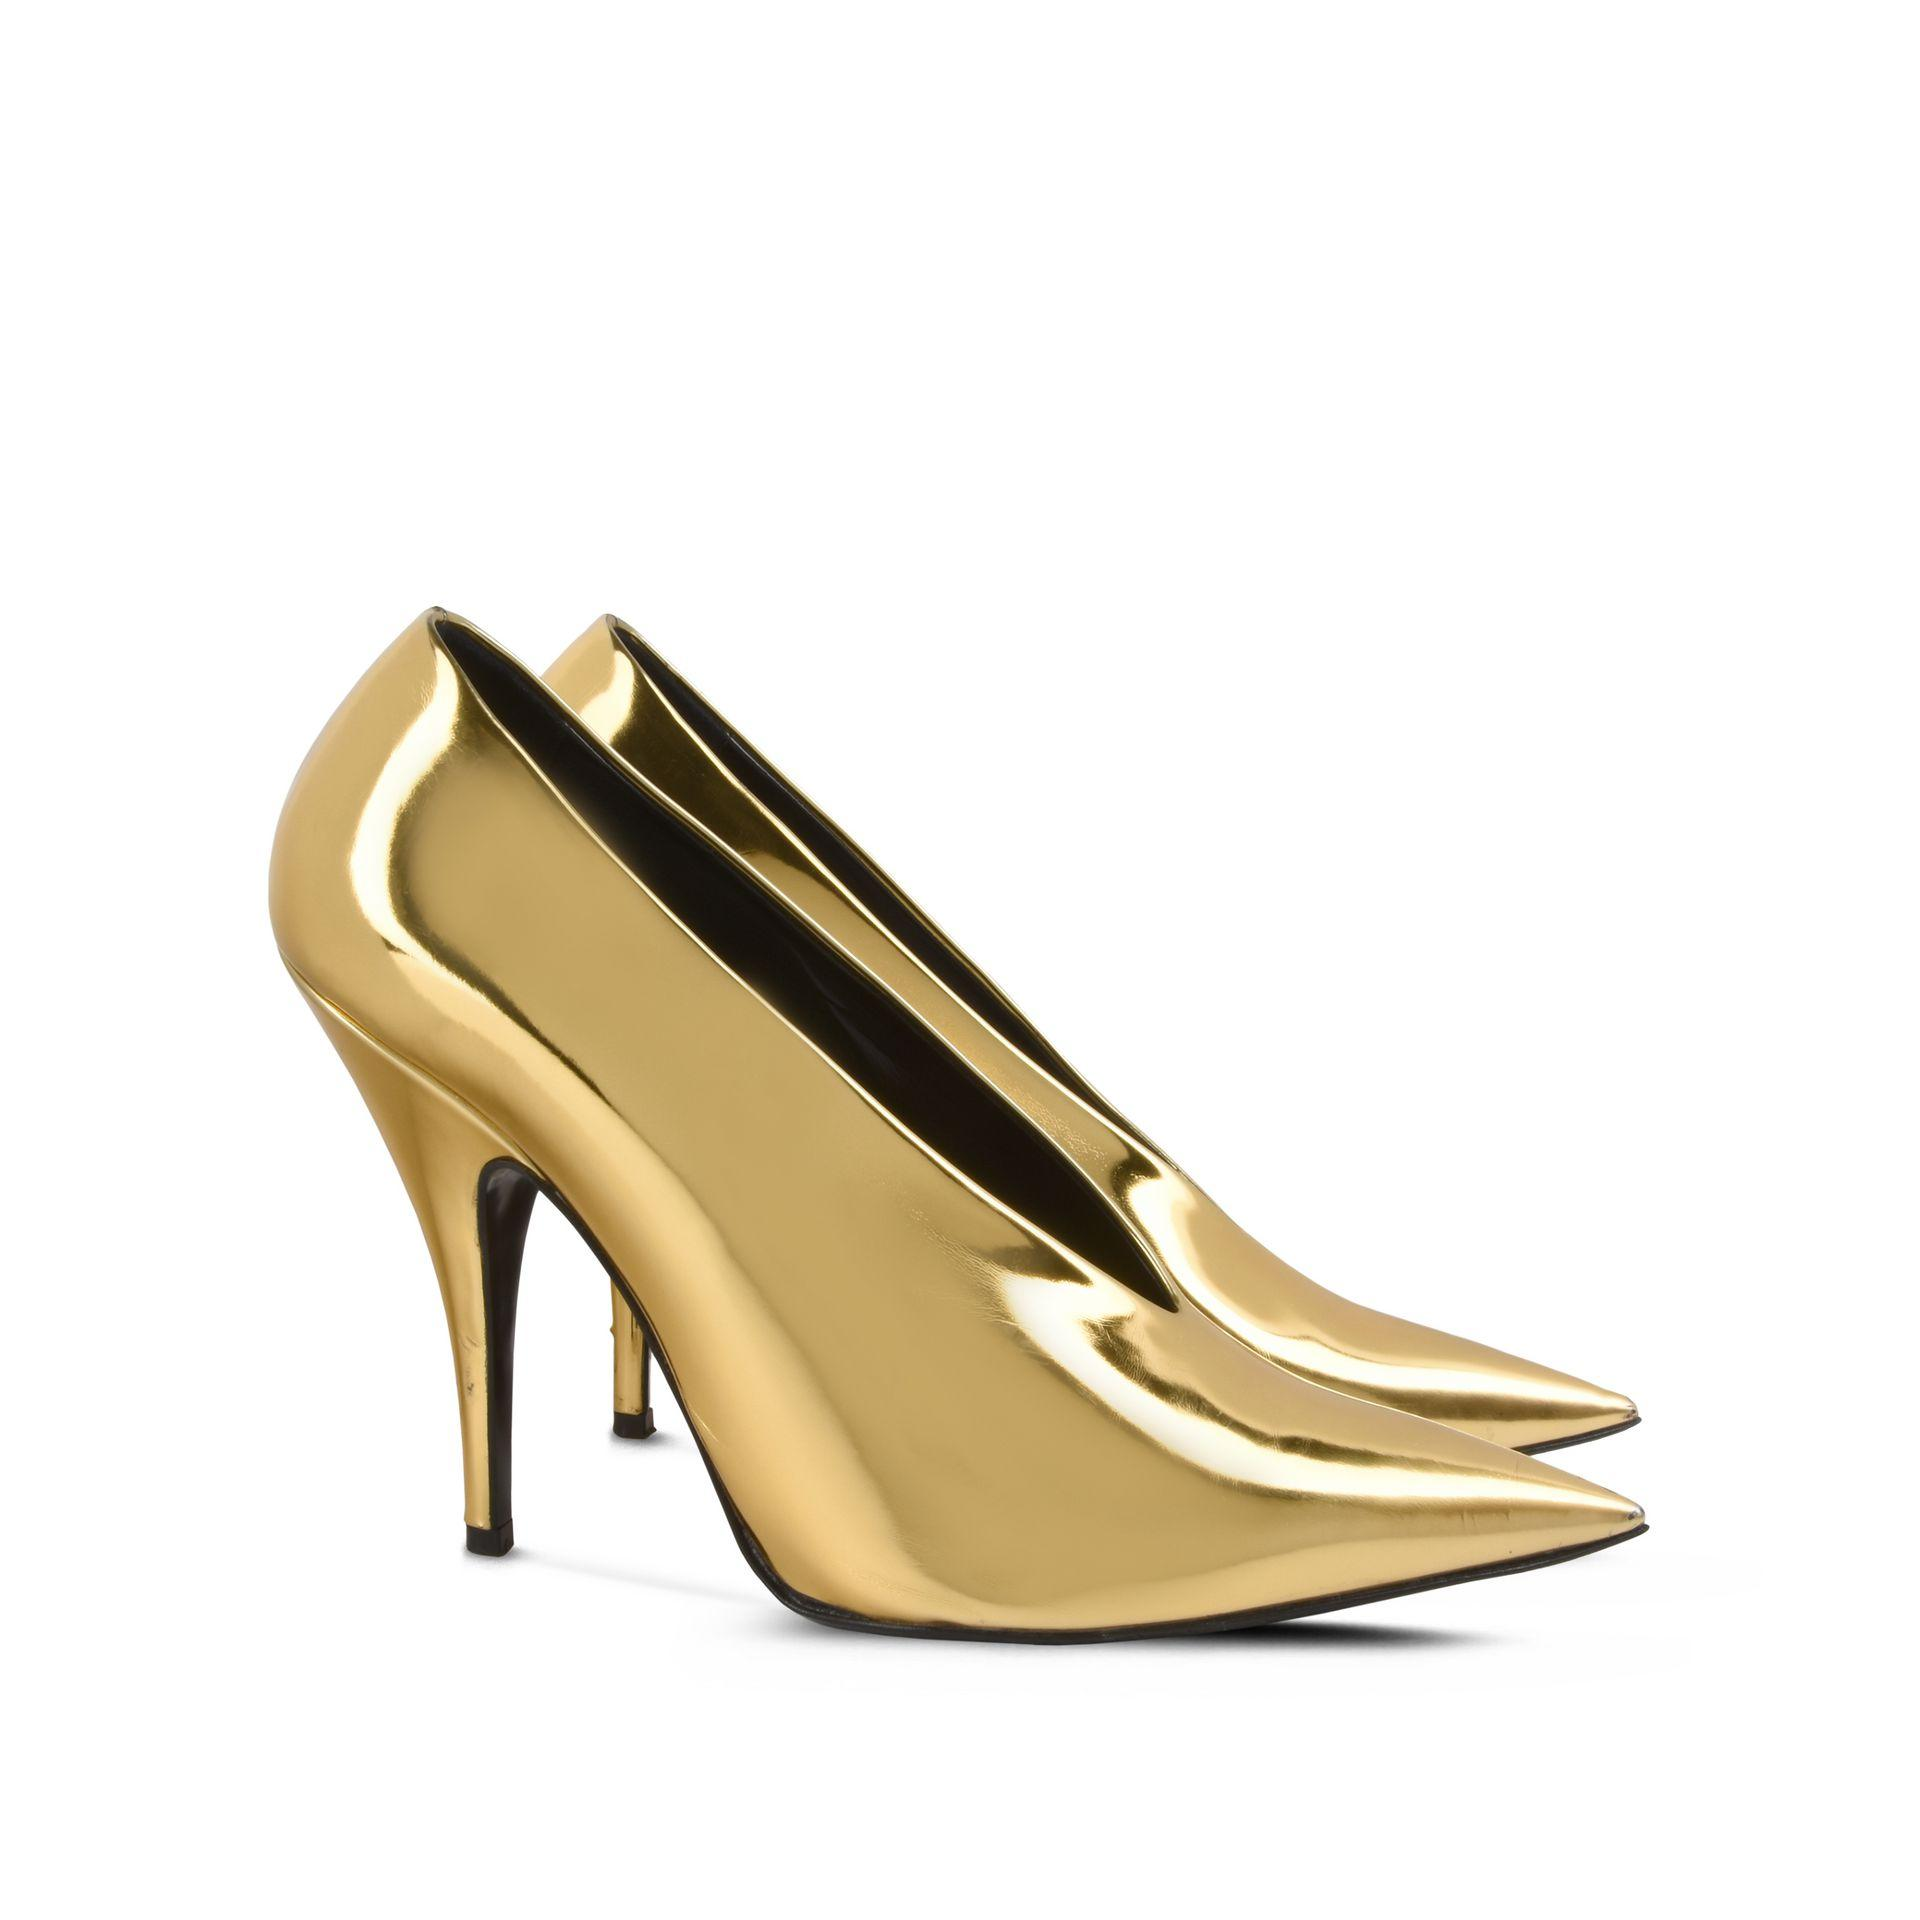 Stella mccartney Gold Pointed Pumps in Metallic | Lyst